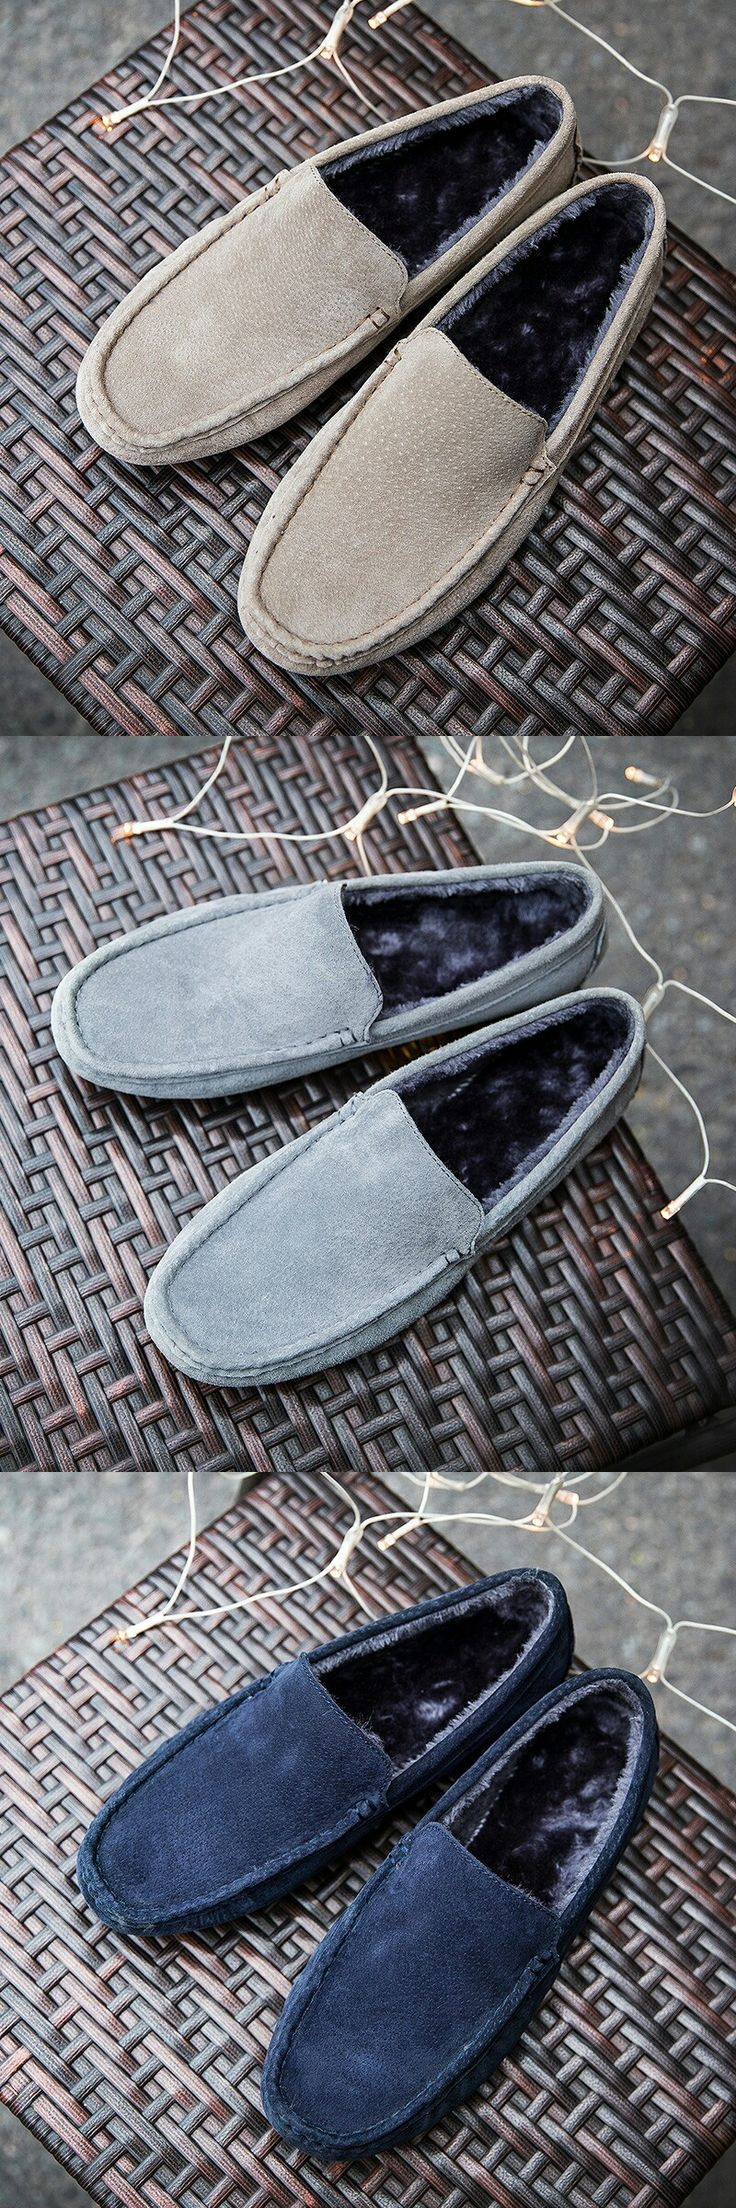 >> Click to buy << Prelesty Autumn Winter Warm Leather & Fur Vintage Genuine Leather Soft Loafers for Men Slip On Moccasins Boat Flats Shoes